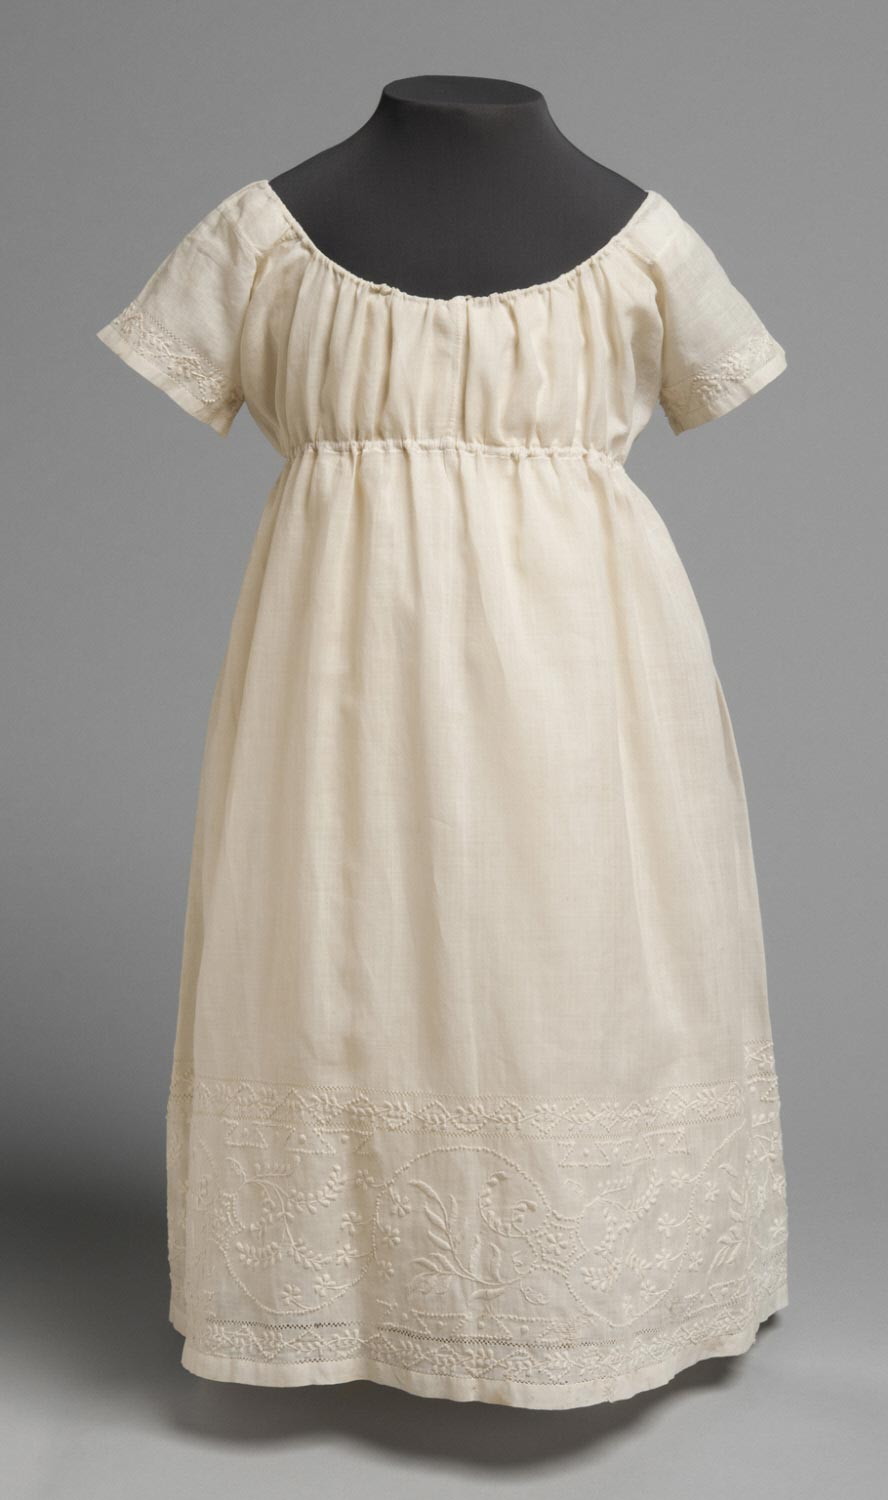 Infant Boy's Dress